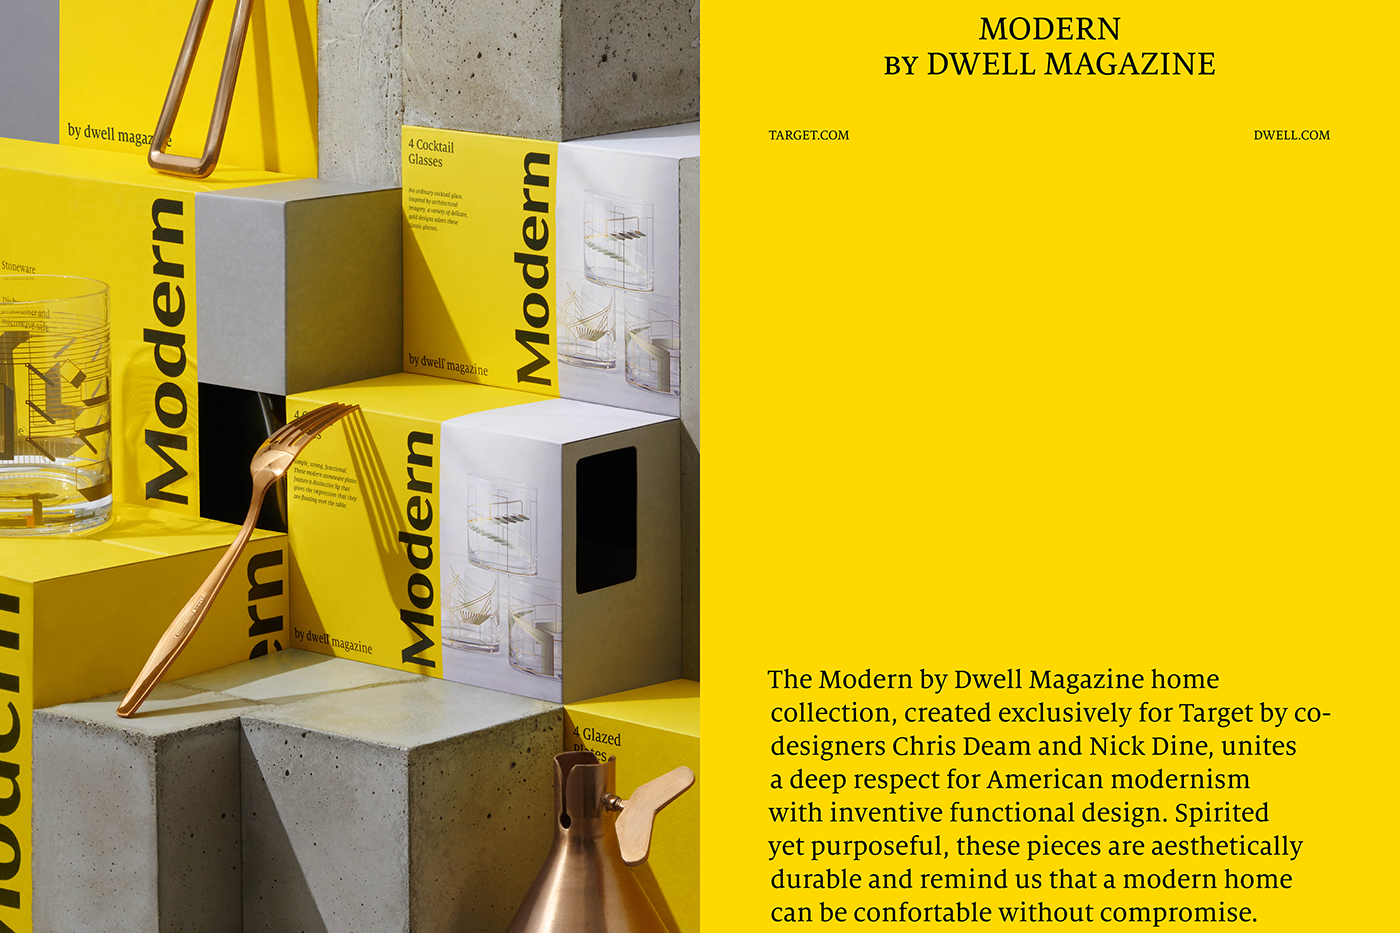 Modern by Dwell Magazine on Behance